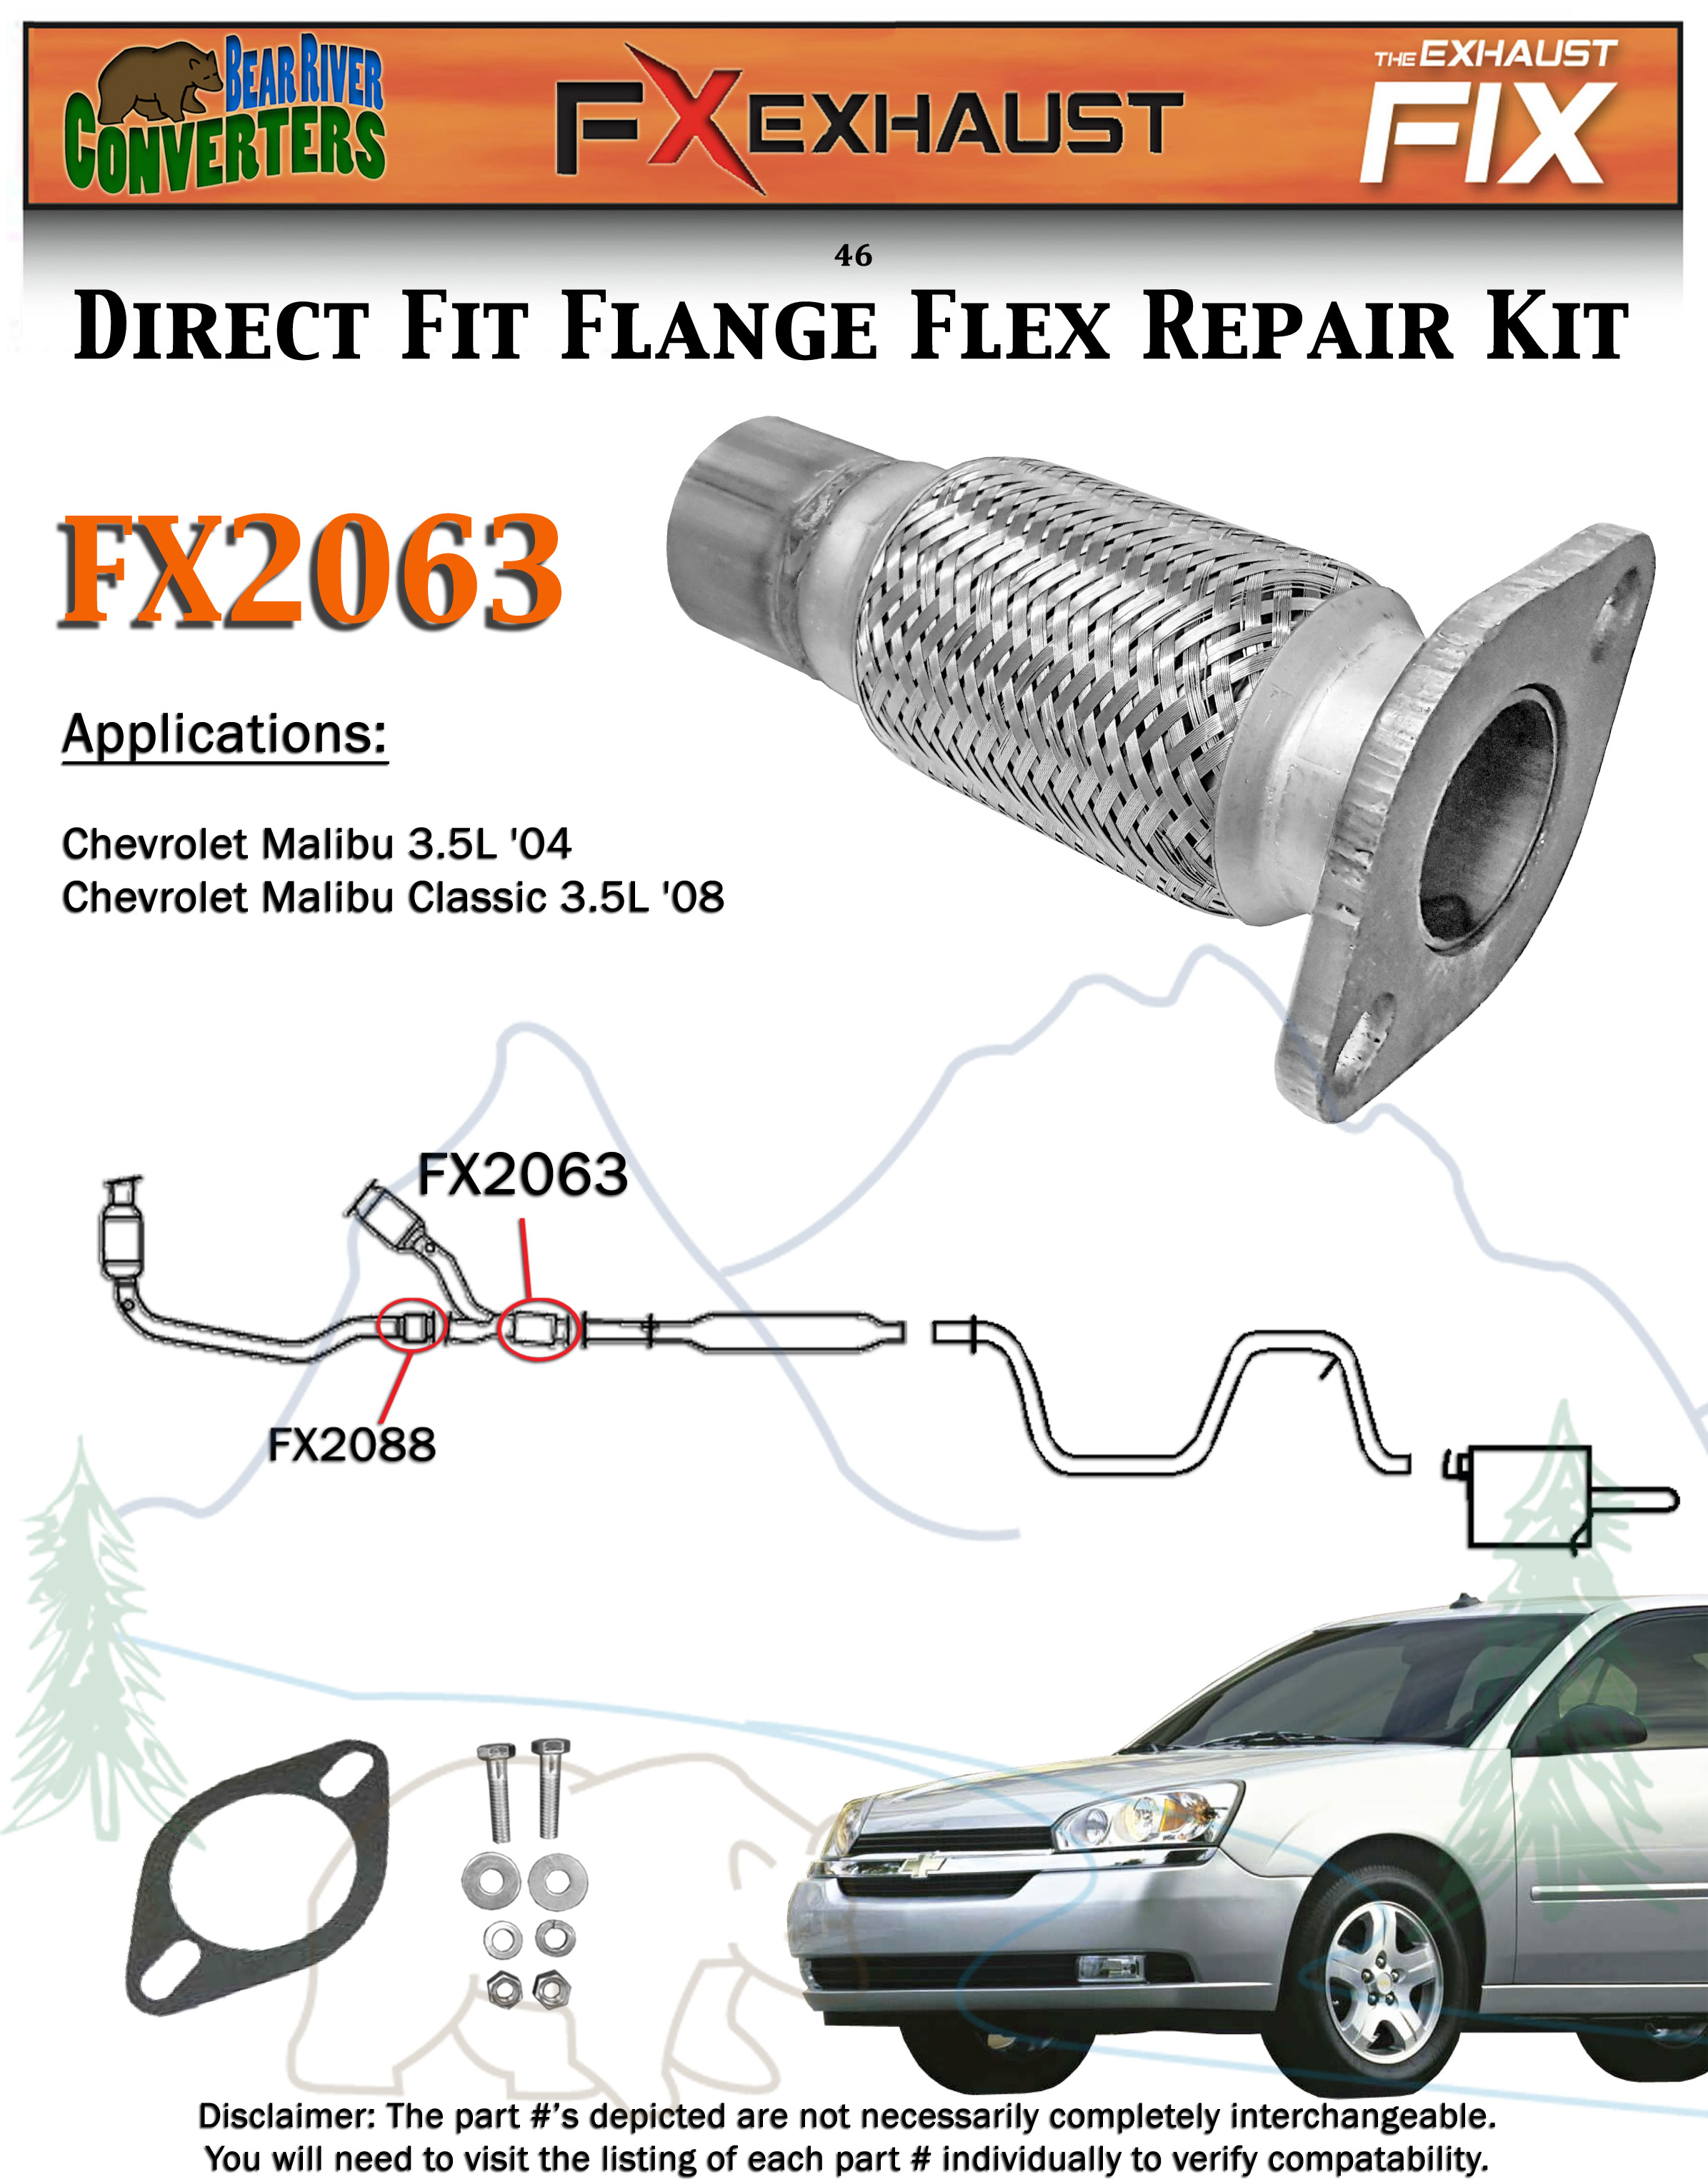 FX2063 Semi Direct Fit Exhaust Flange Repair Flex Pipe Replacement